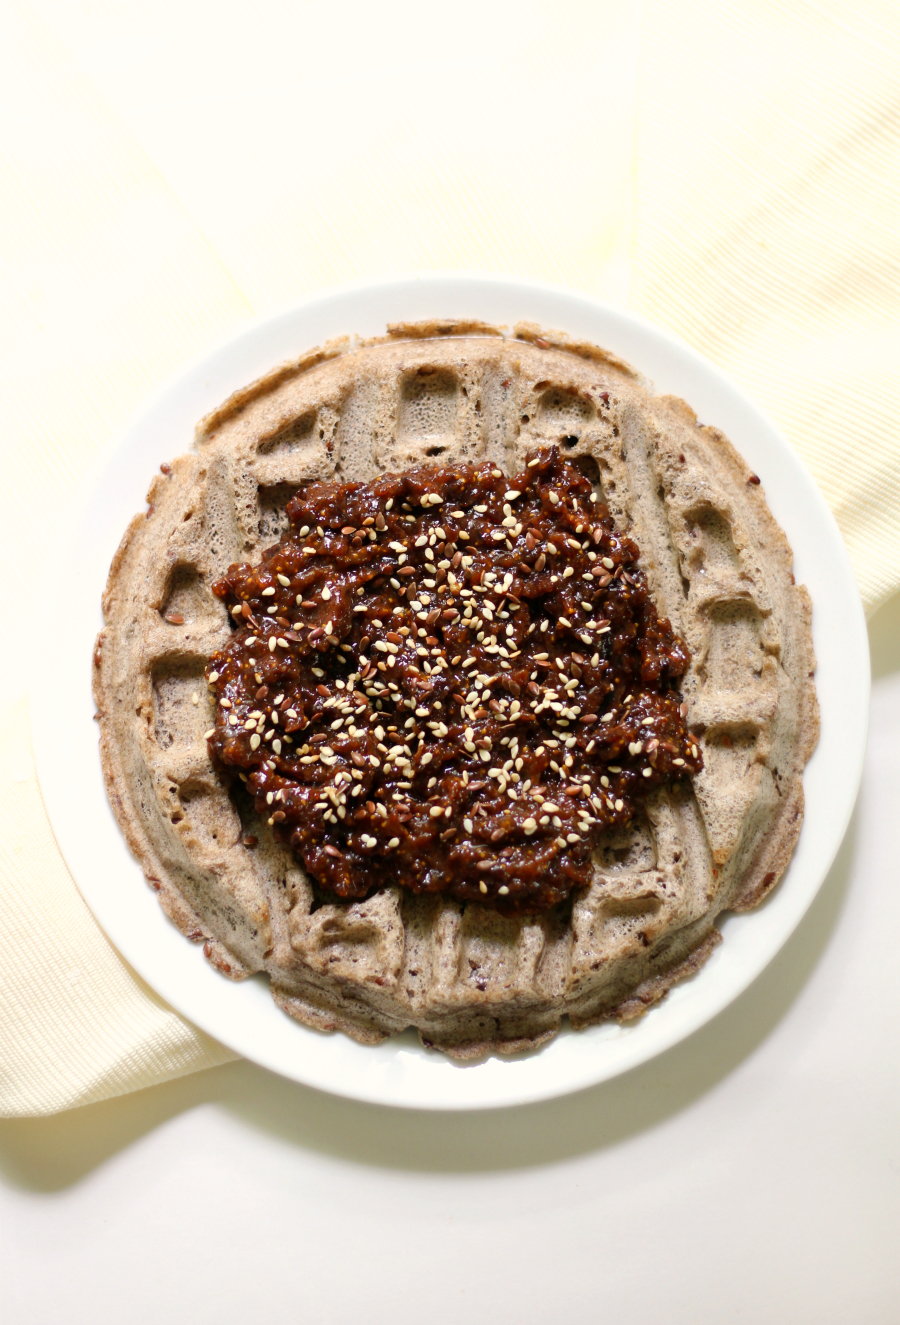 Buckwheat Waffles with Fig, Maple, Tahini Compote   Strength and Sunshine @RebeccaGF666 Simple gluten-free, nut-free, vegan buckwheat waffles with a full-flavored fig, maple, tahini compote to take this breakfast over the top! These waffles will be your new favorite weekend breakfast or brunch recipe!